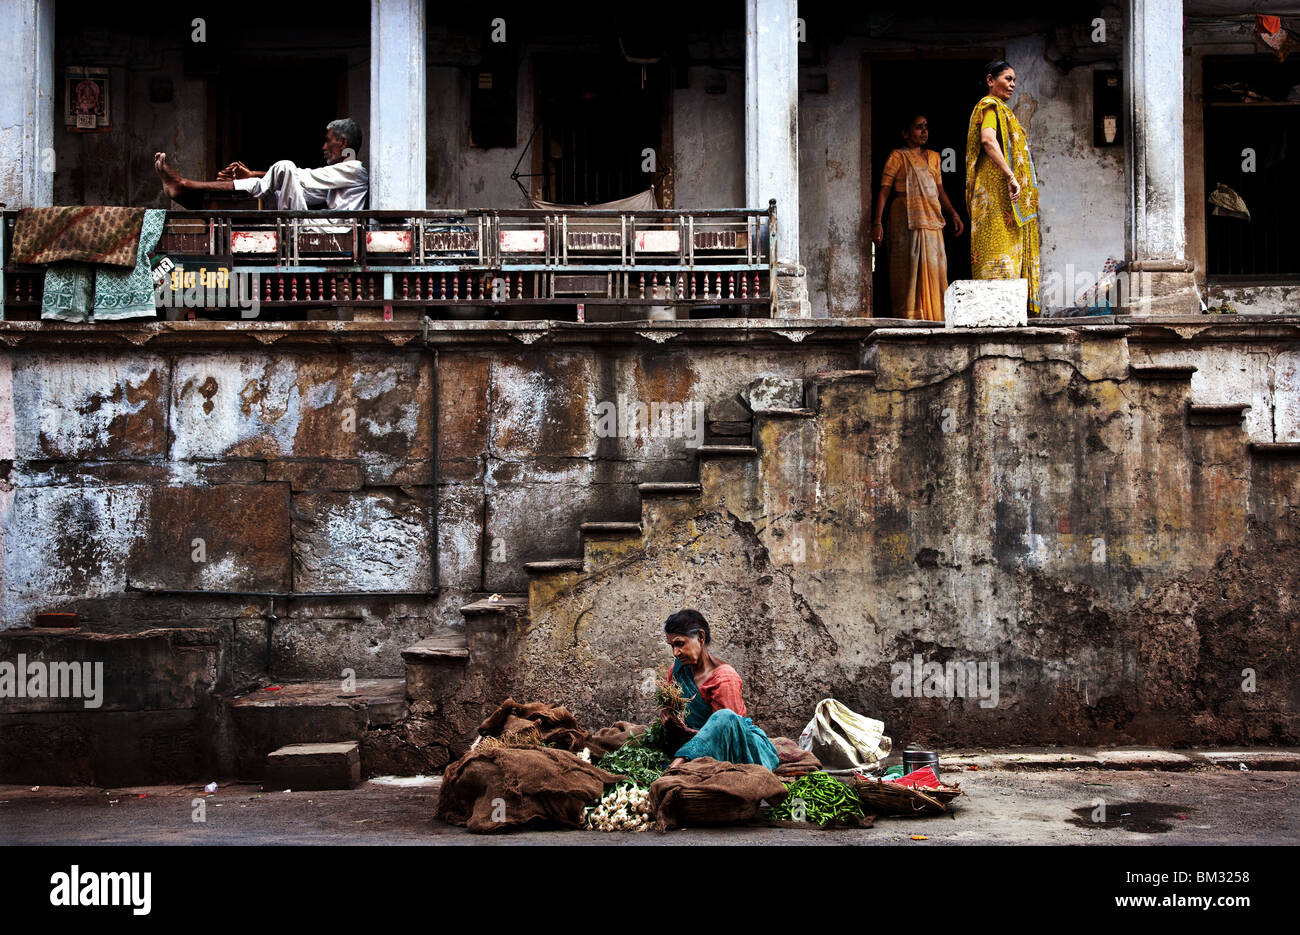 INDIA, MAY 12, 2010: A vegetable seller sits on the road outside an old house in Ahmedabad,Gujurat,India. - Stock Image